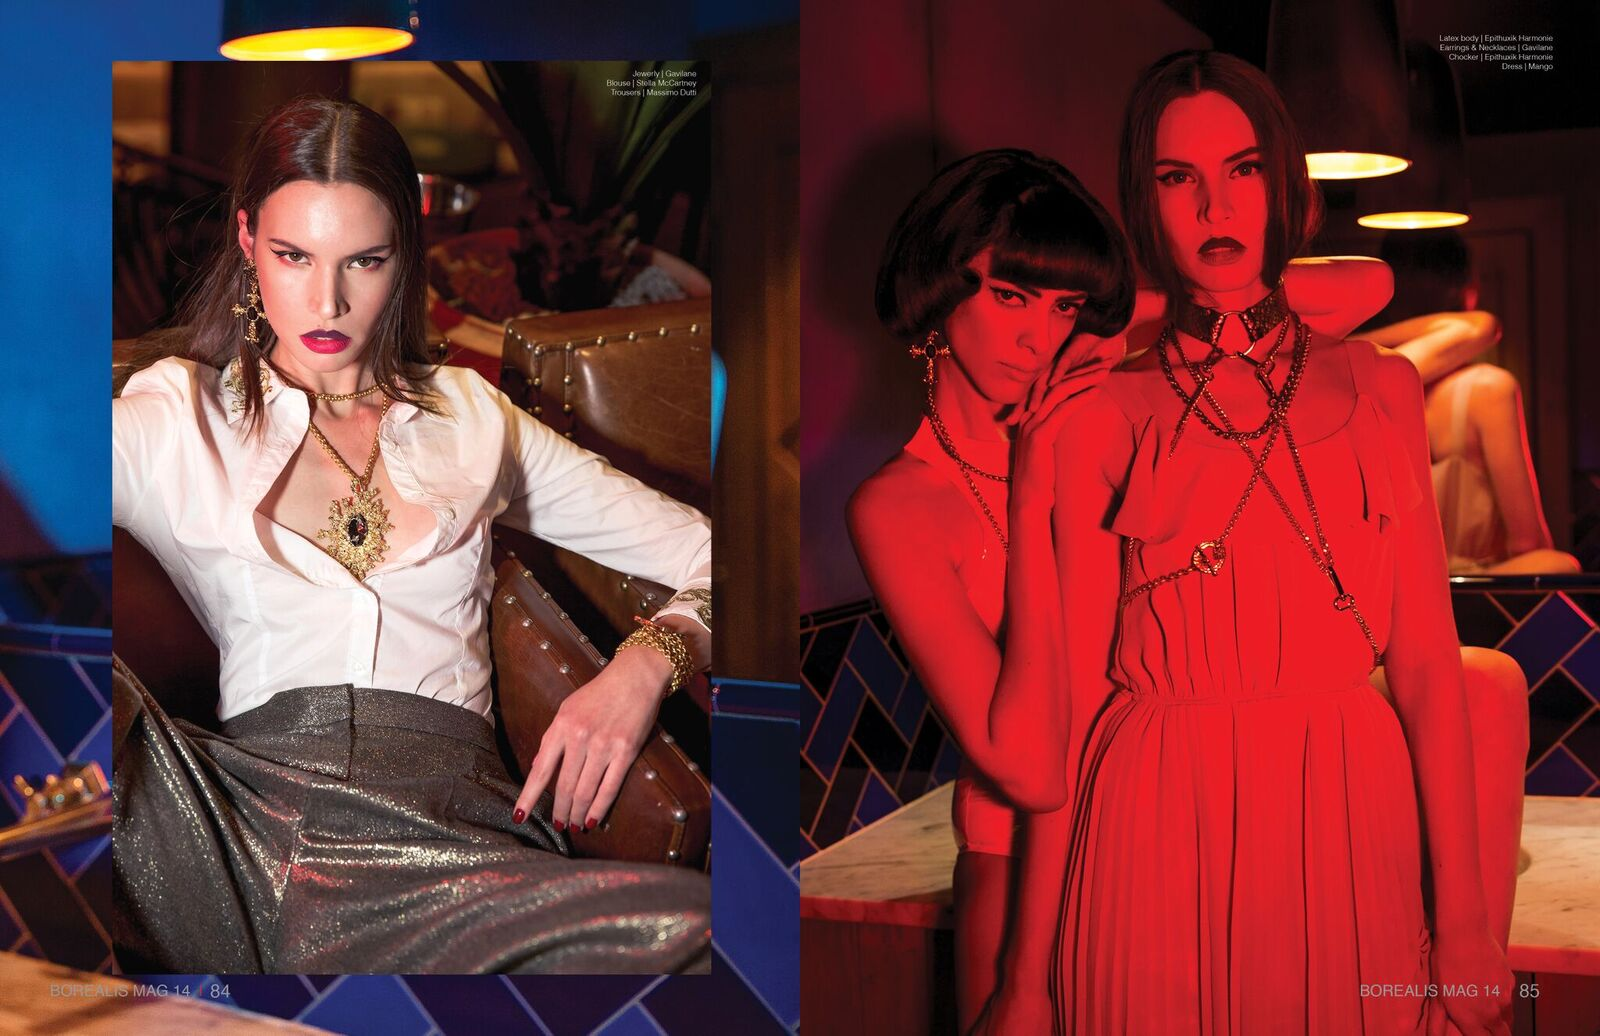 Borealis Mag_ISSUE 14_TearSheet43_preview.jpeg